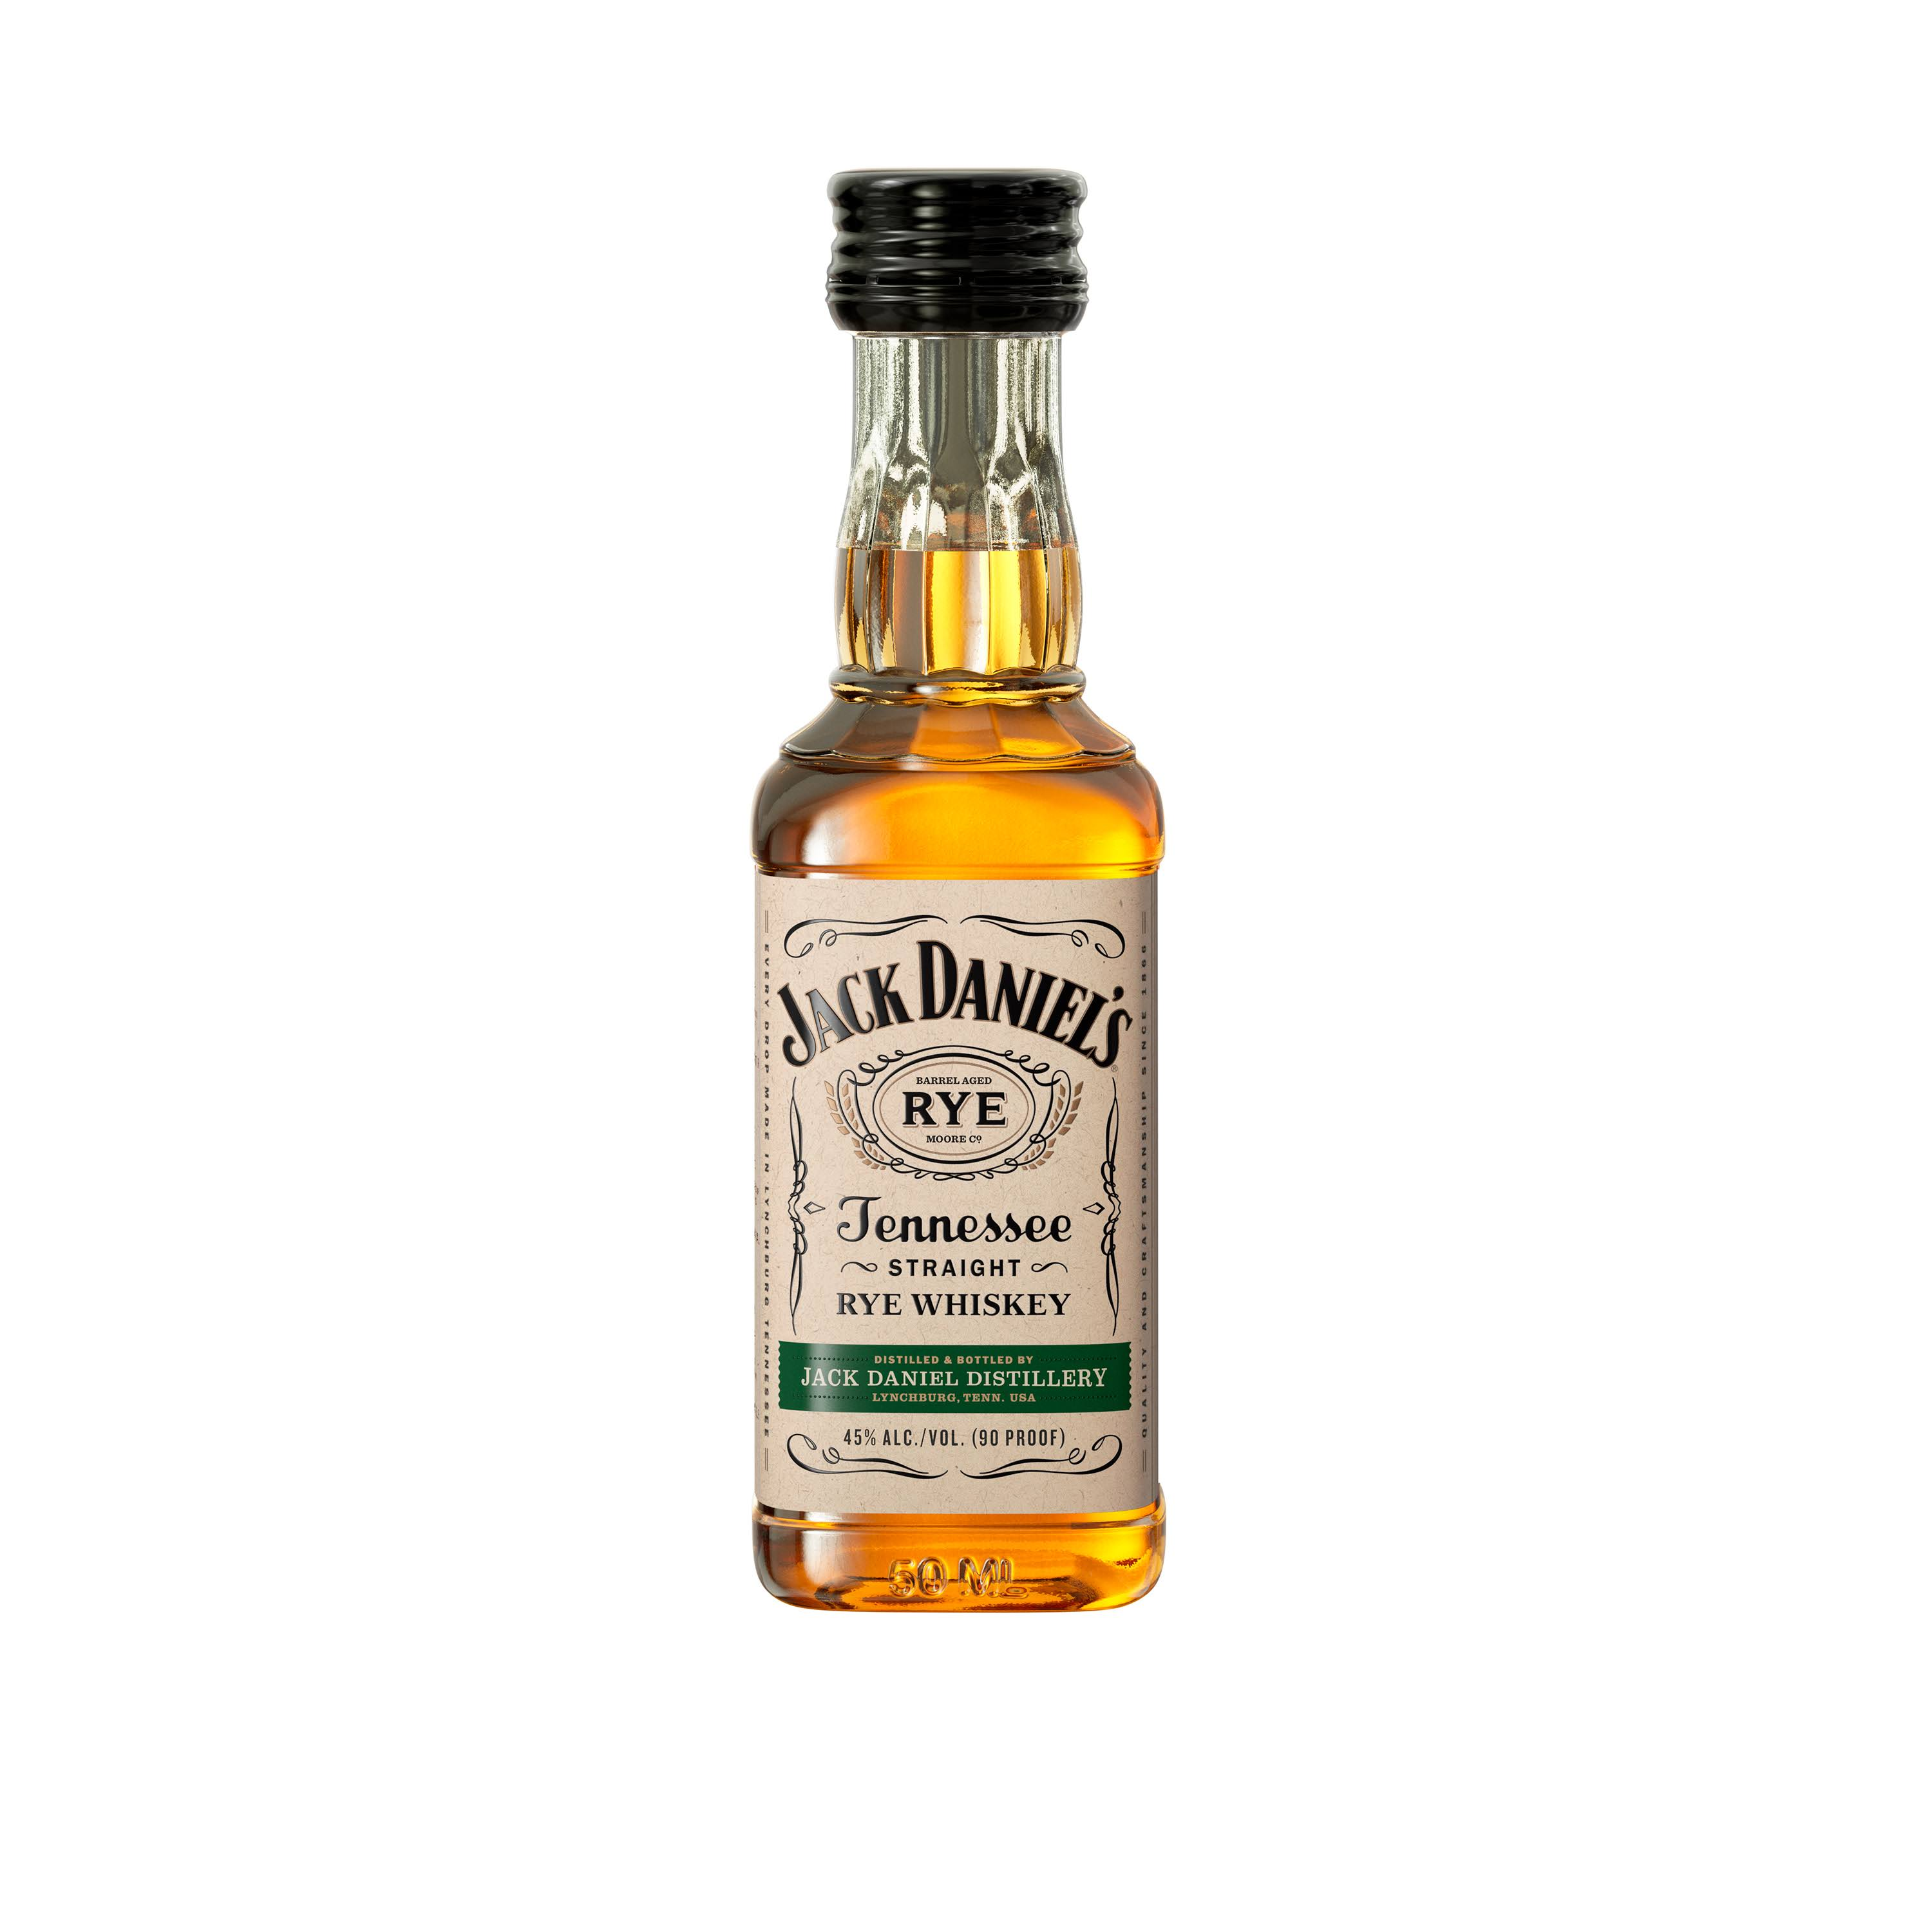 Jack Daniels Tennessee Rye Whiskey, Tennessee Rye Whiskey - 12 pack, 50 ml bottles